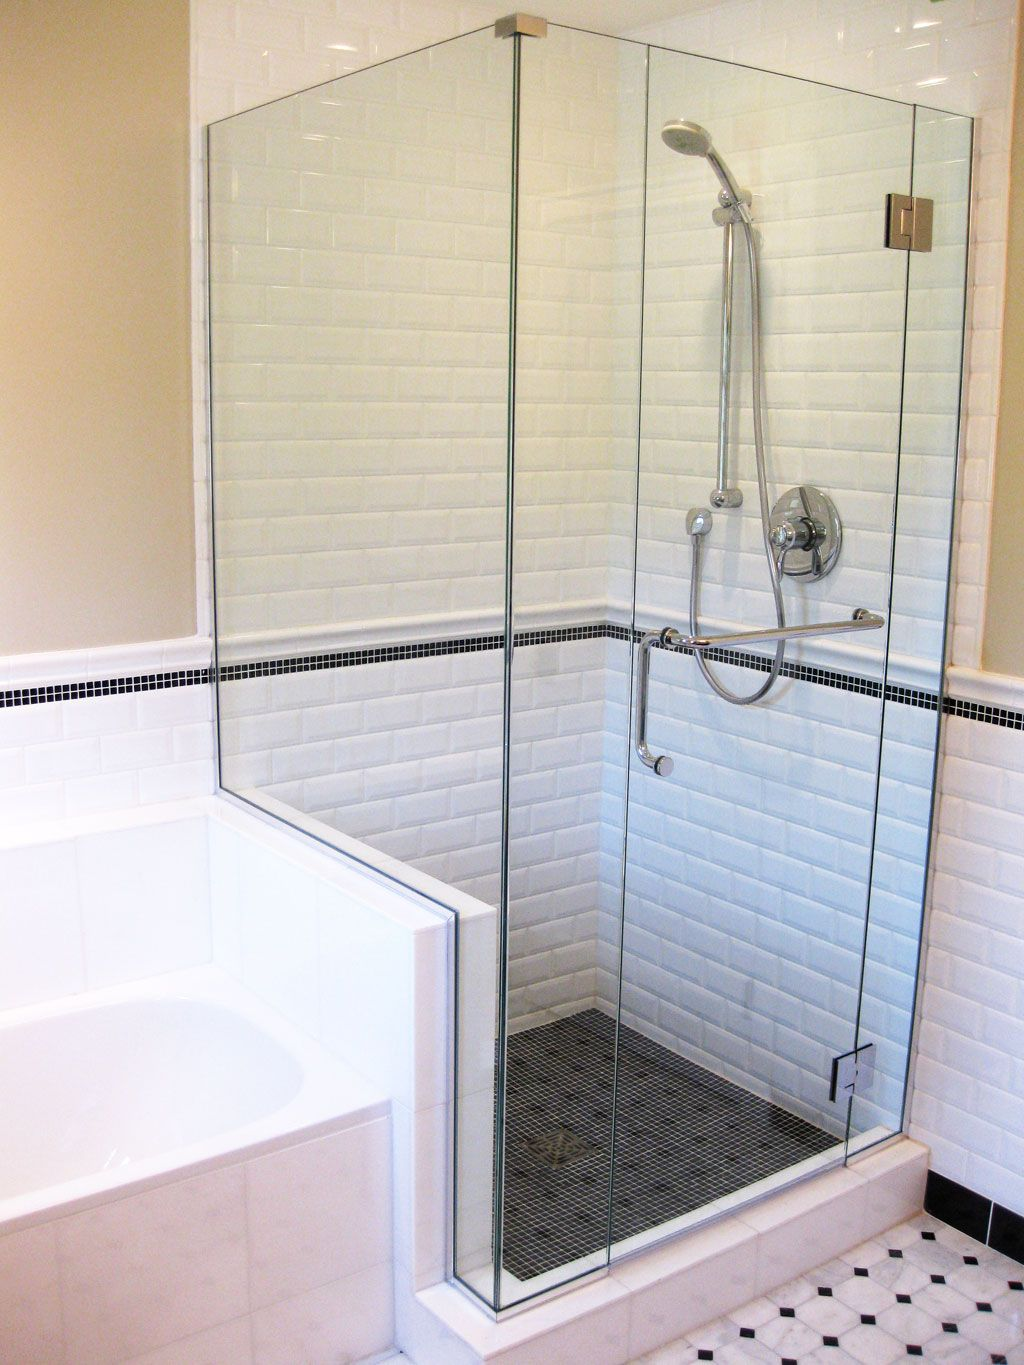 Bathroom Tiles Victoria Bc picture gallery of our custom glass showers & bathrooms in